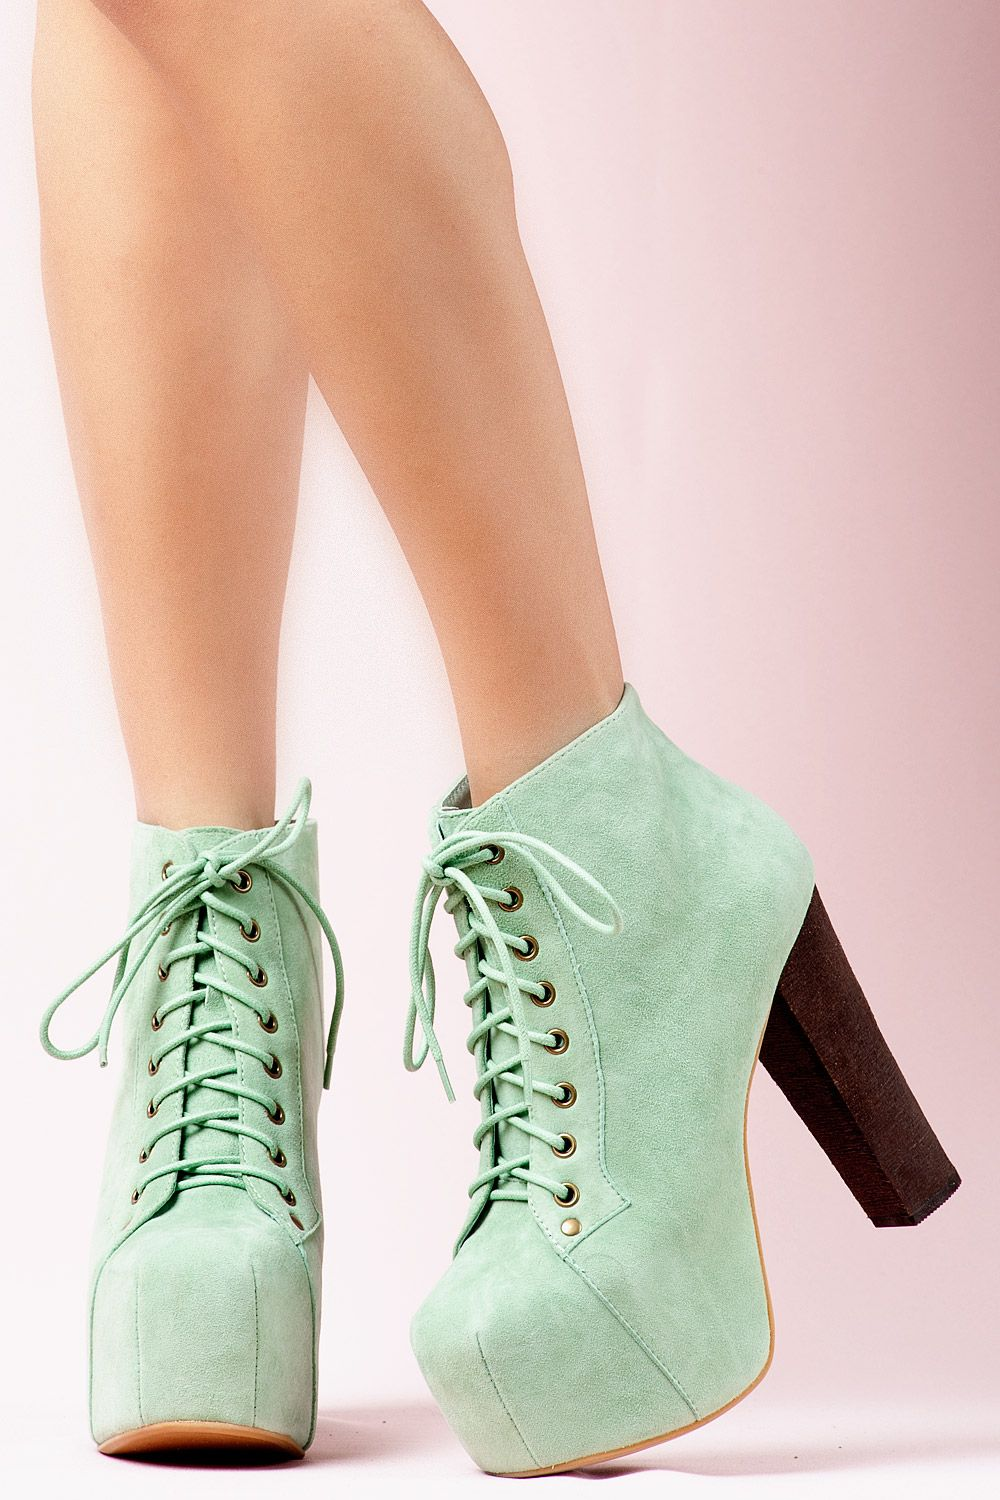 377d84b45bf JEFFREY CAMPBELL - LITA MINT SUEDE : Shoe of the year by Jeffrey ...